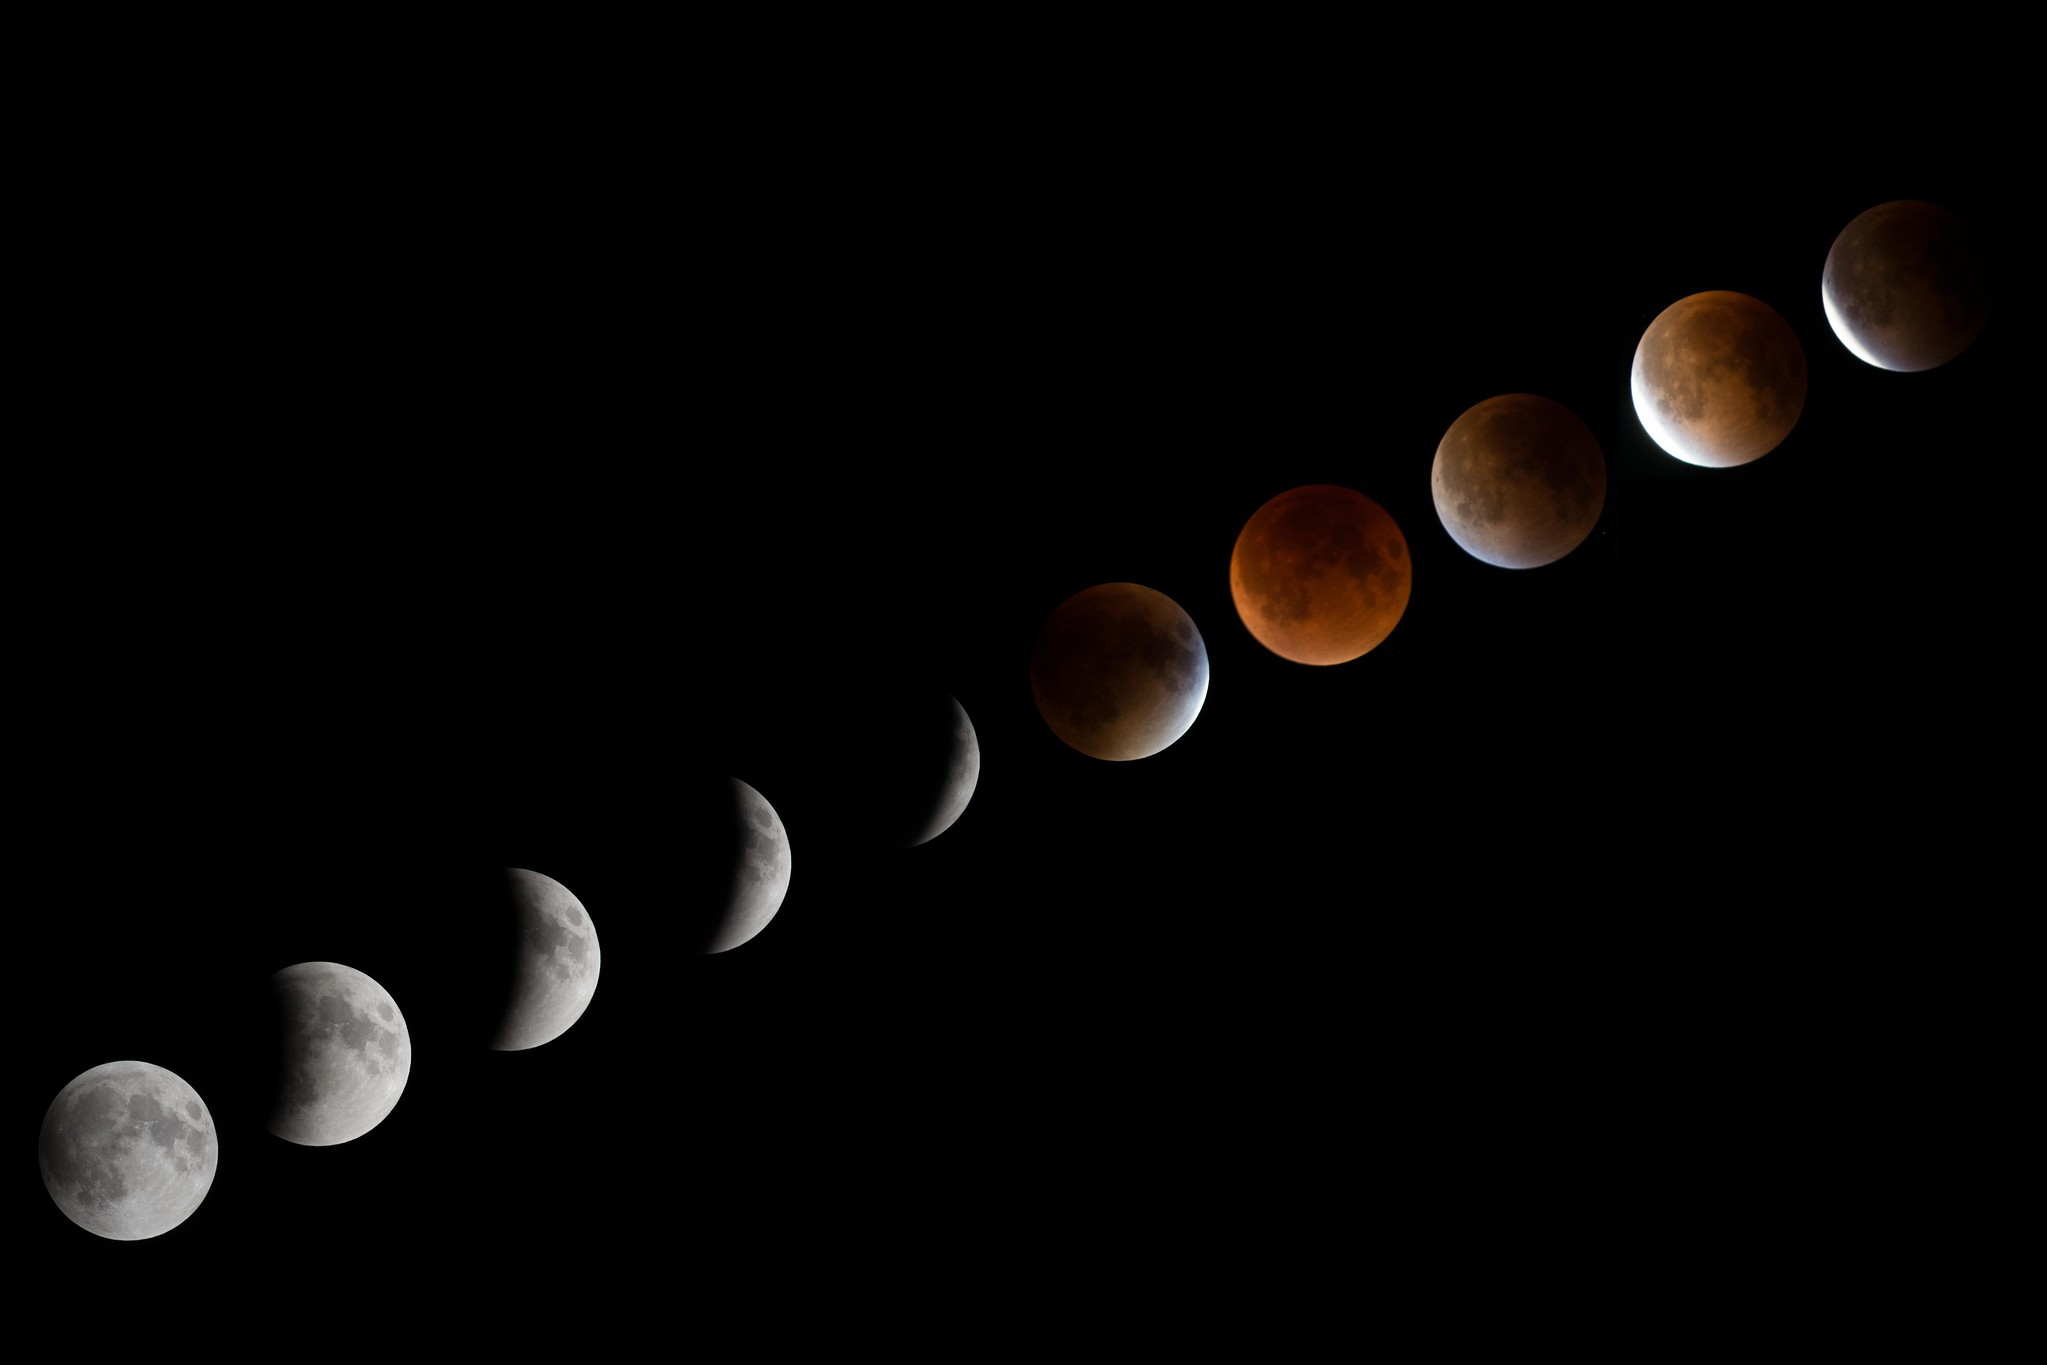 Lunar Eclipse - September 27 2015 - Diagonal Progression